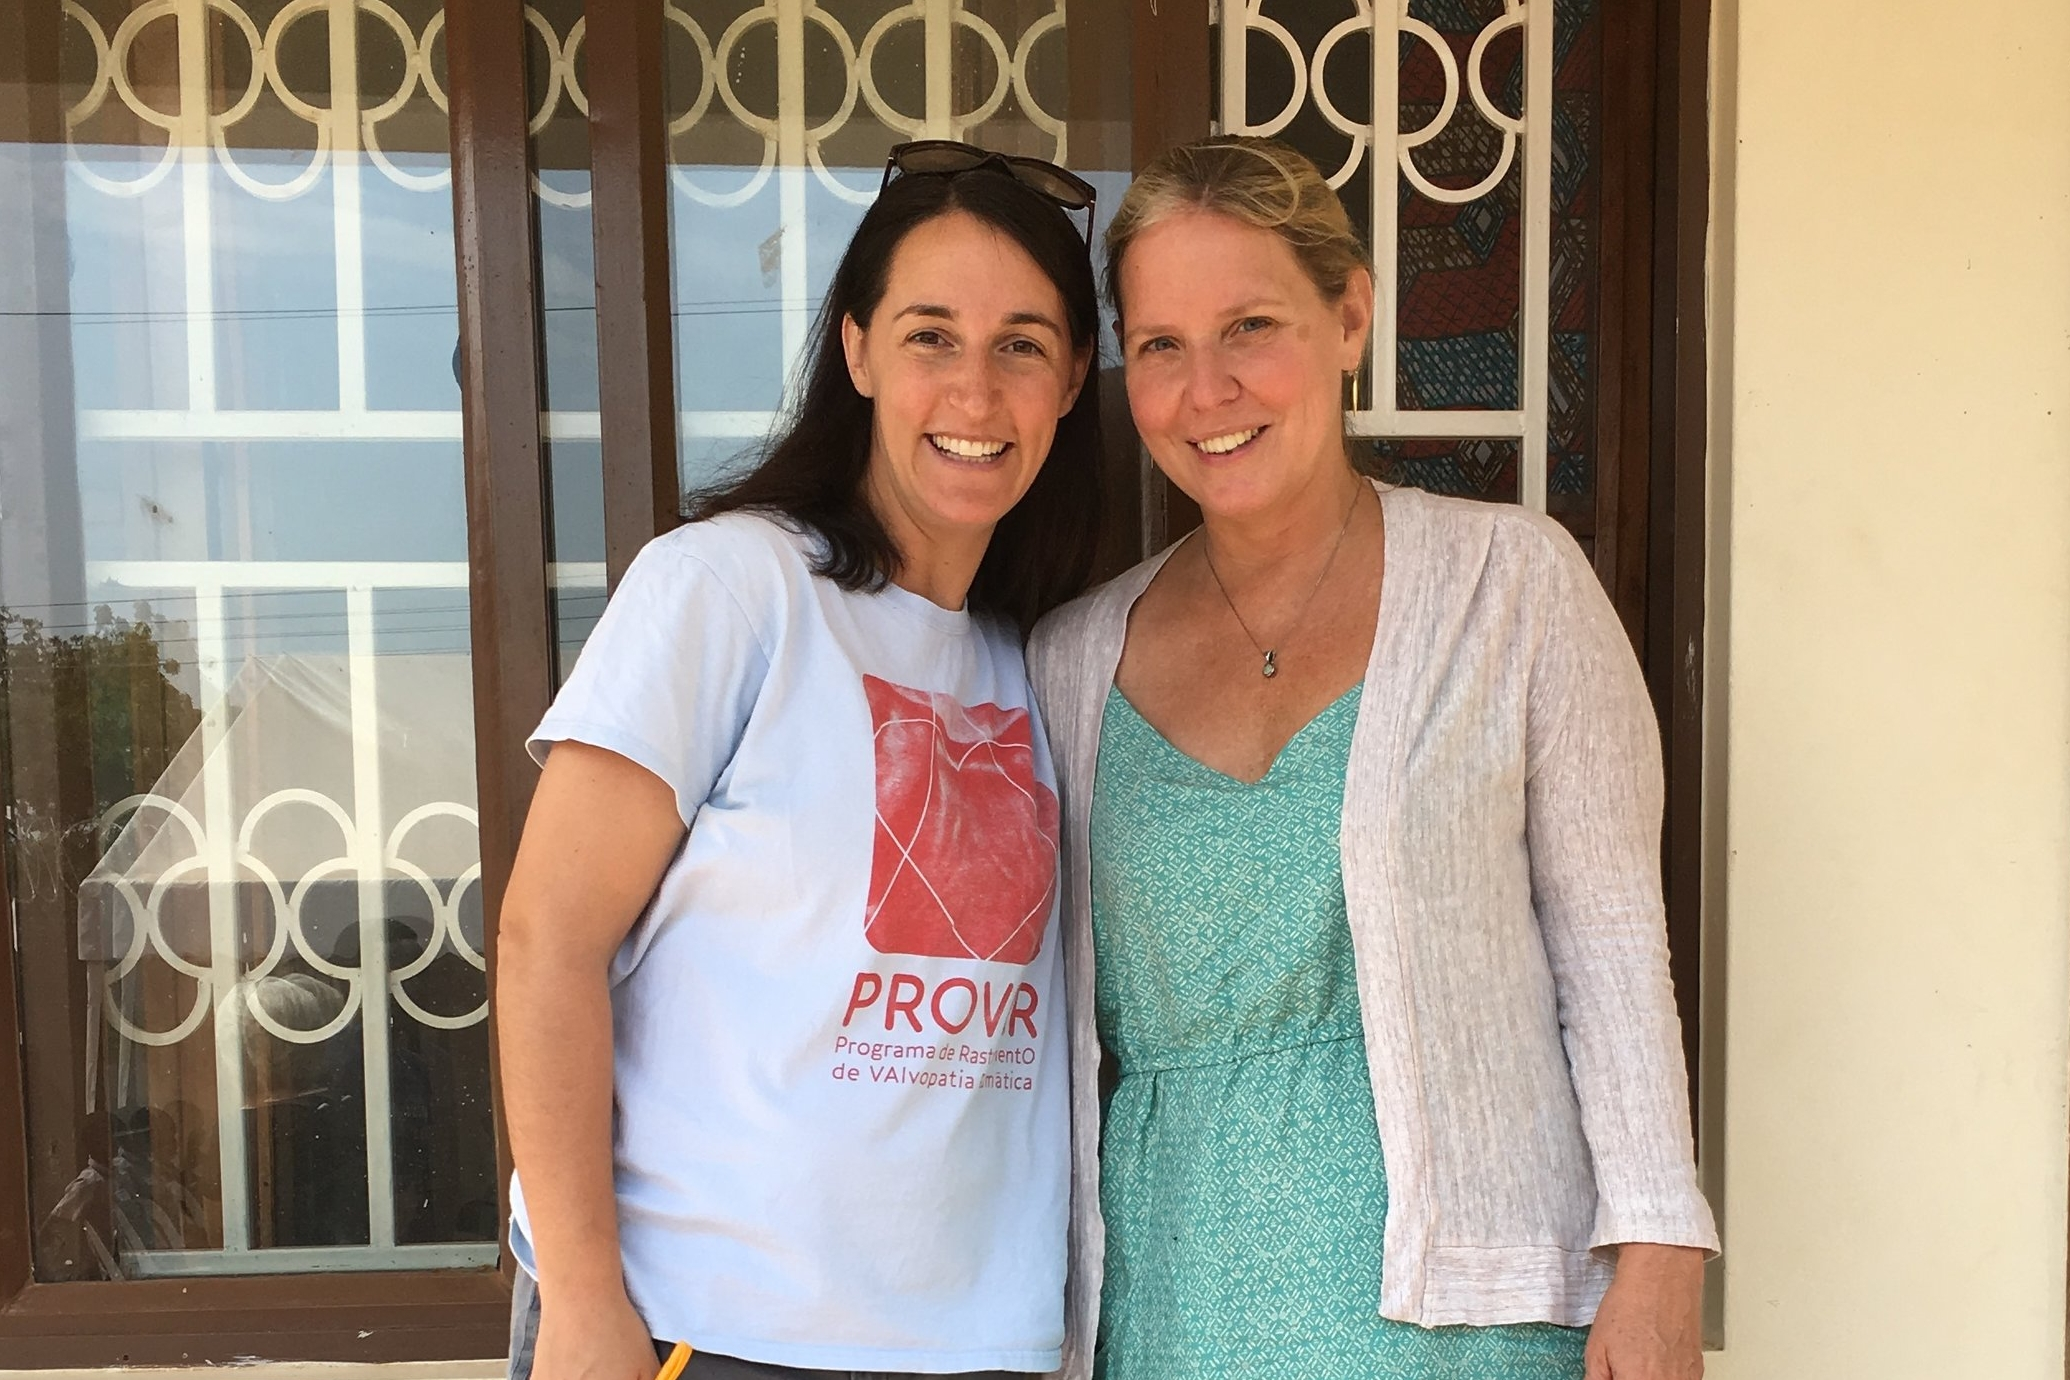 Andrea Beaton, left, the article's lead author, at the Rheumatic Heart Disease Clinic in Gulu, Uganda, together with Imaging the World president Kristen Destigter.